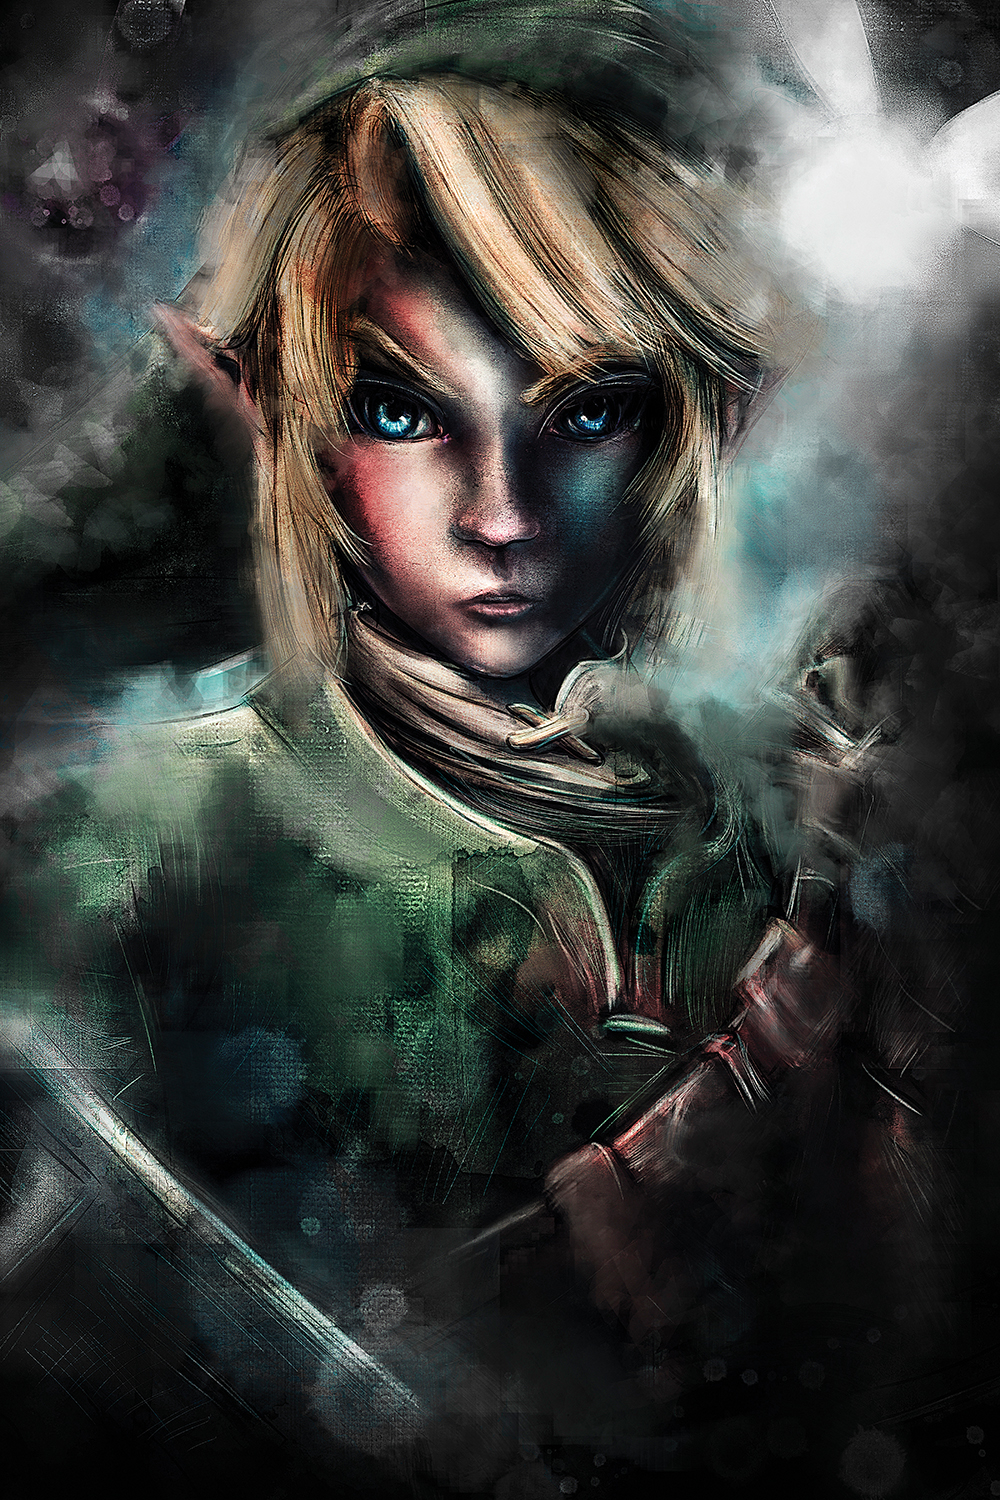 a portrait of link with dramatic shadows and lighting